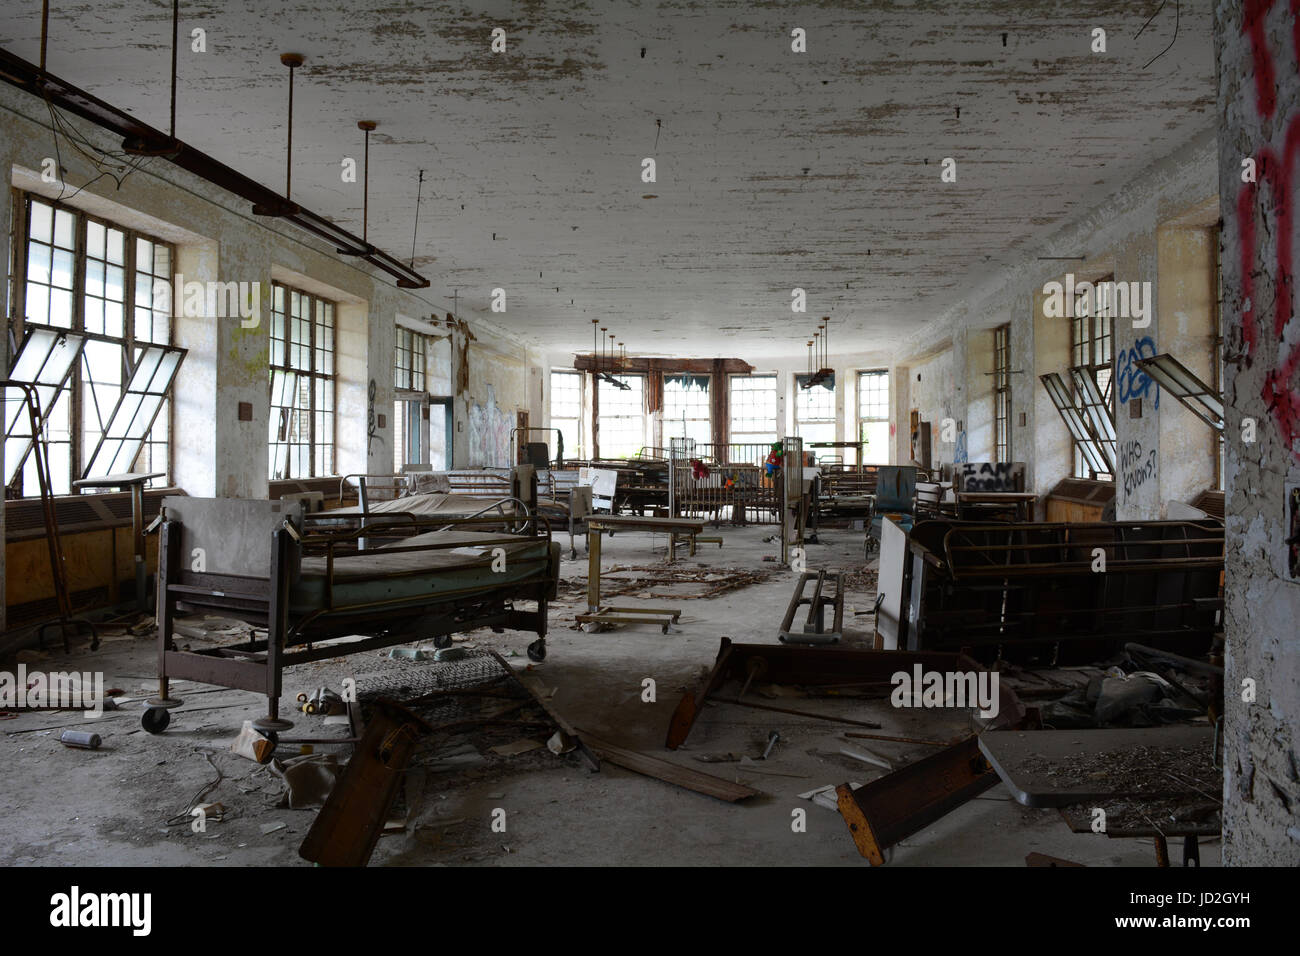 Room And Equipment In Abandoned Hospital